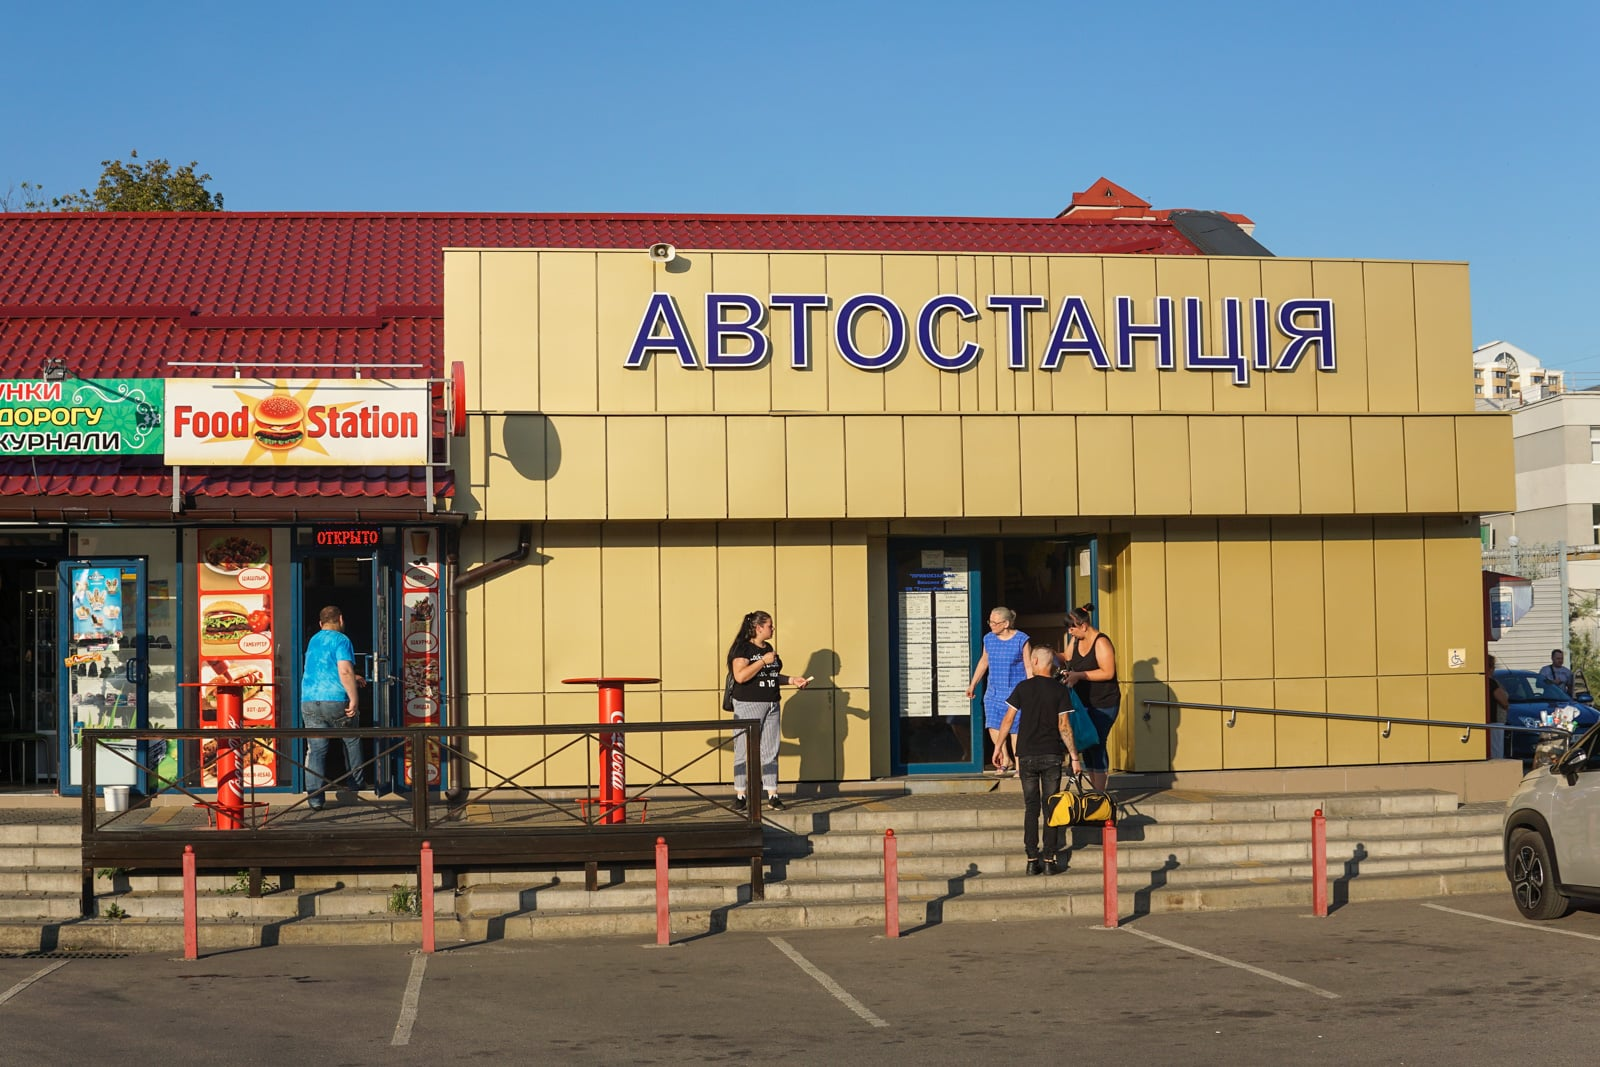 People standing outside the bus station in Belgorod, Russia